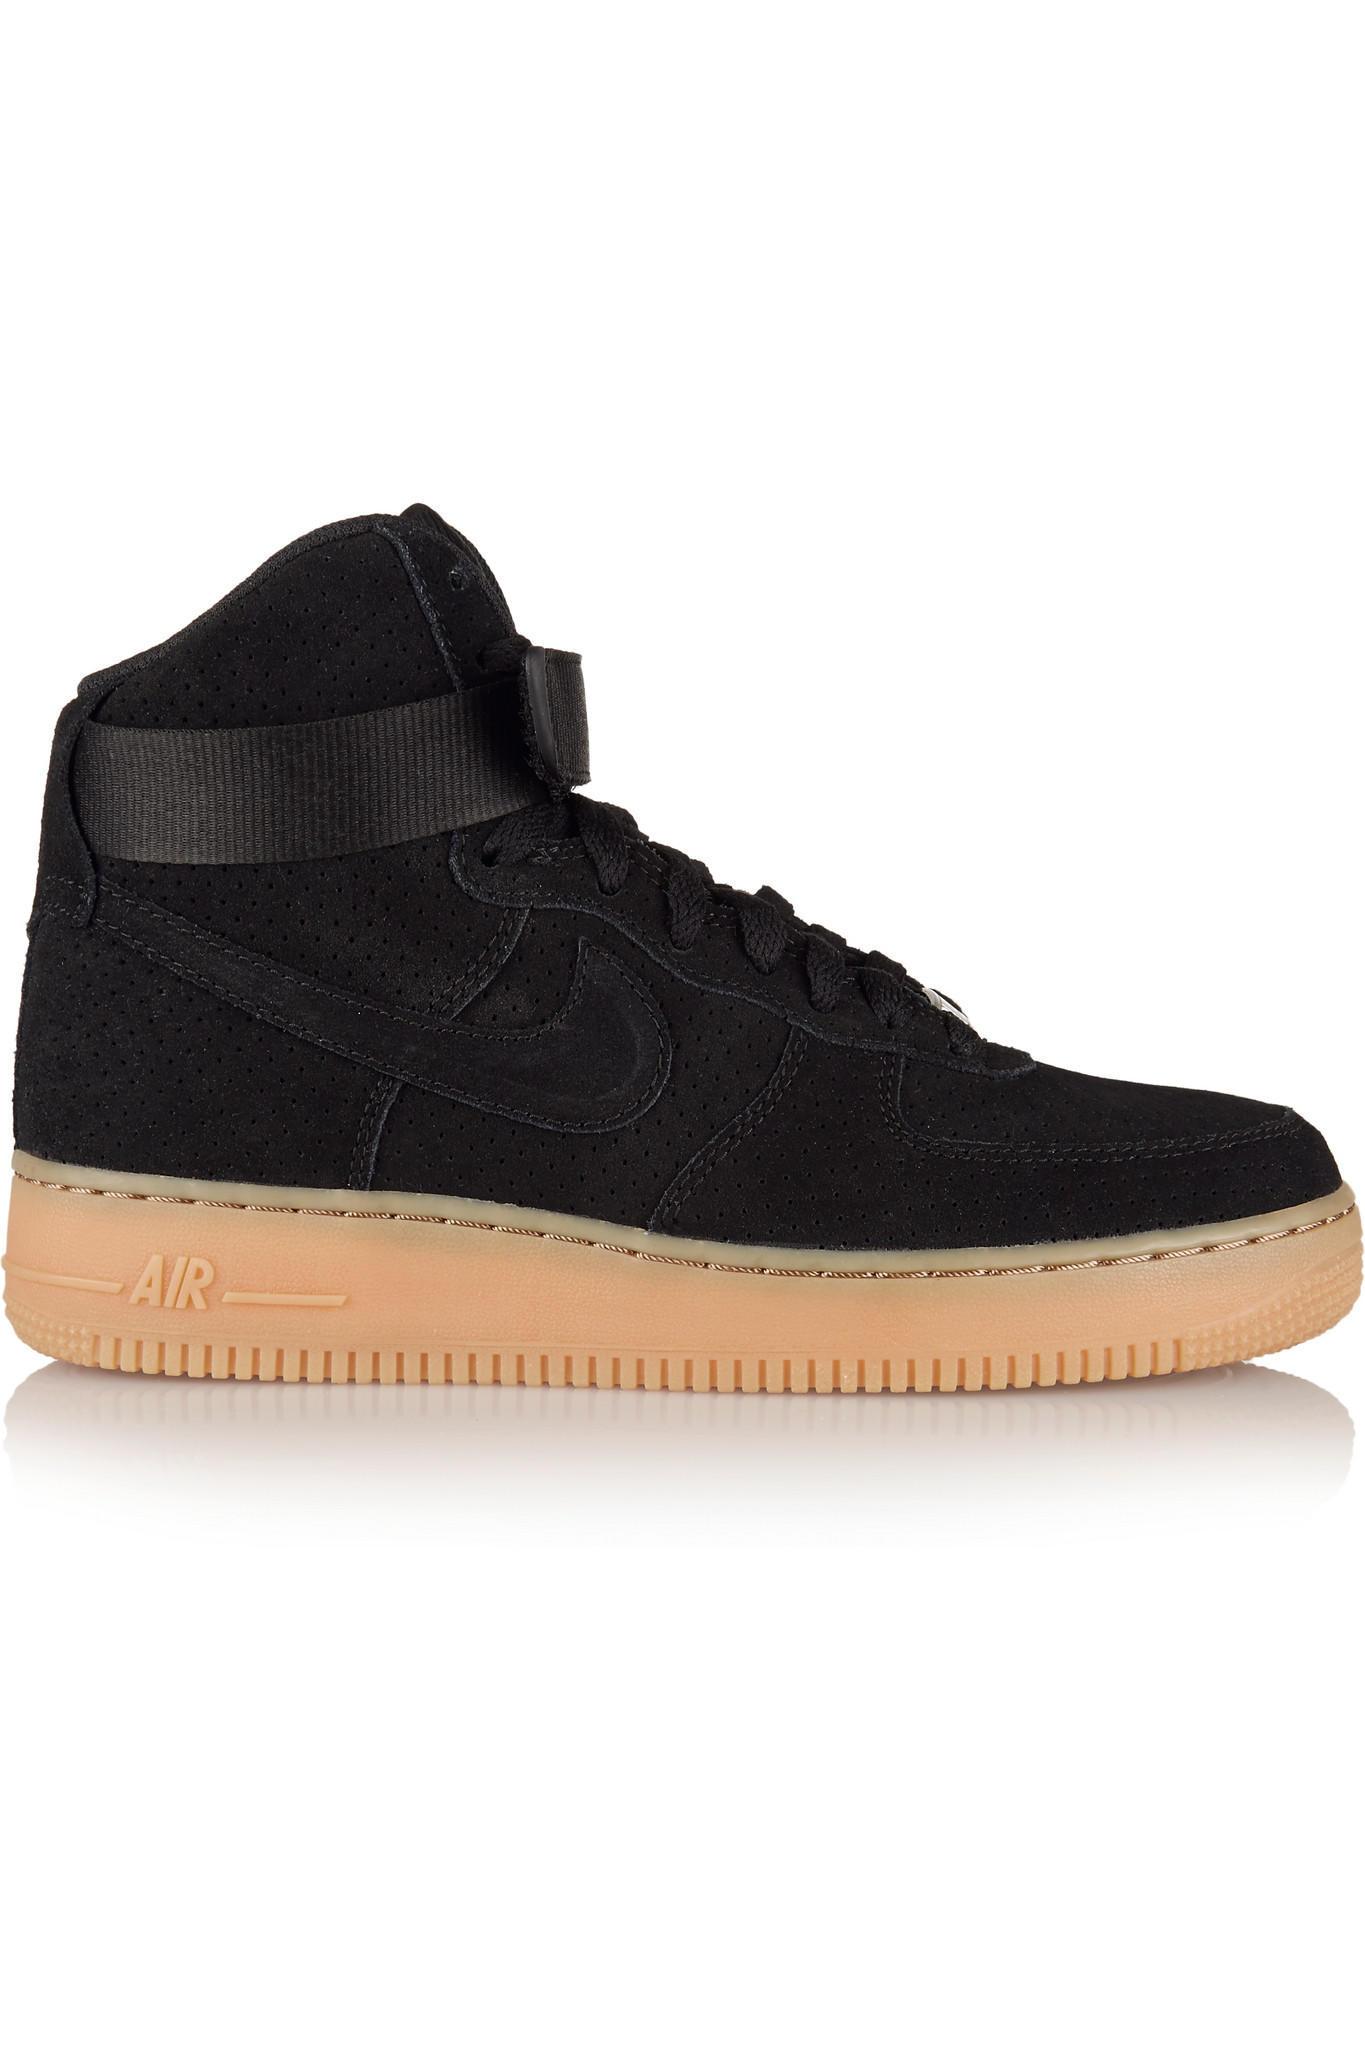 Nike - Air Force 1 Hi suede sneakers from NET-A-PORTER 8ea12828e5